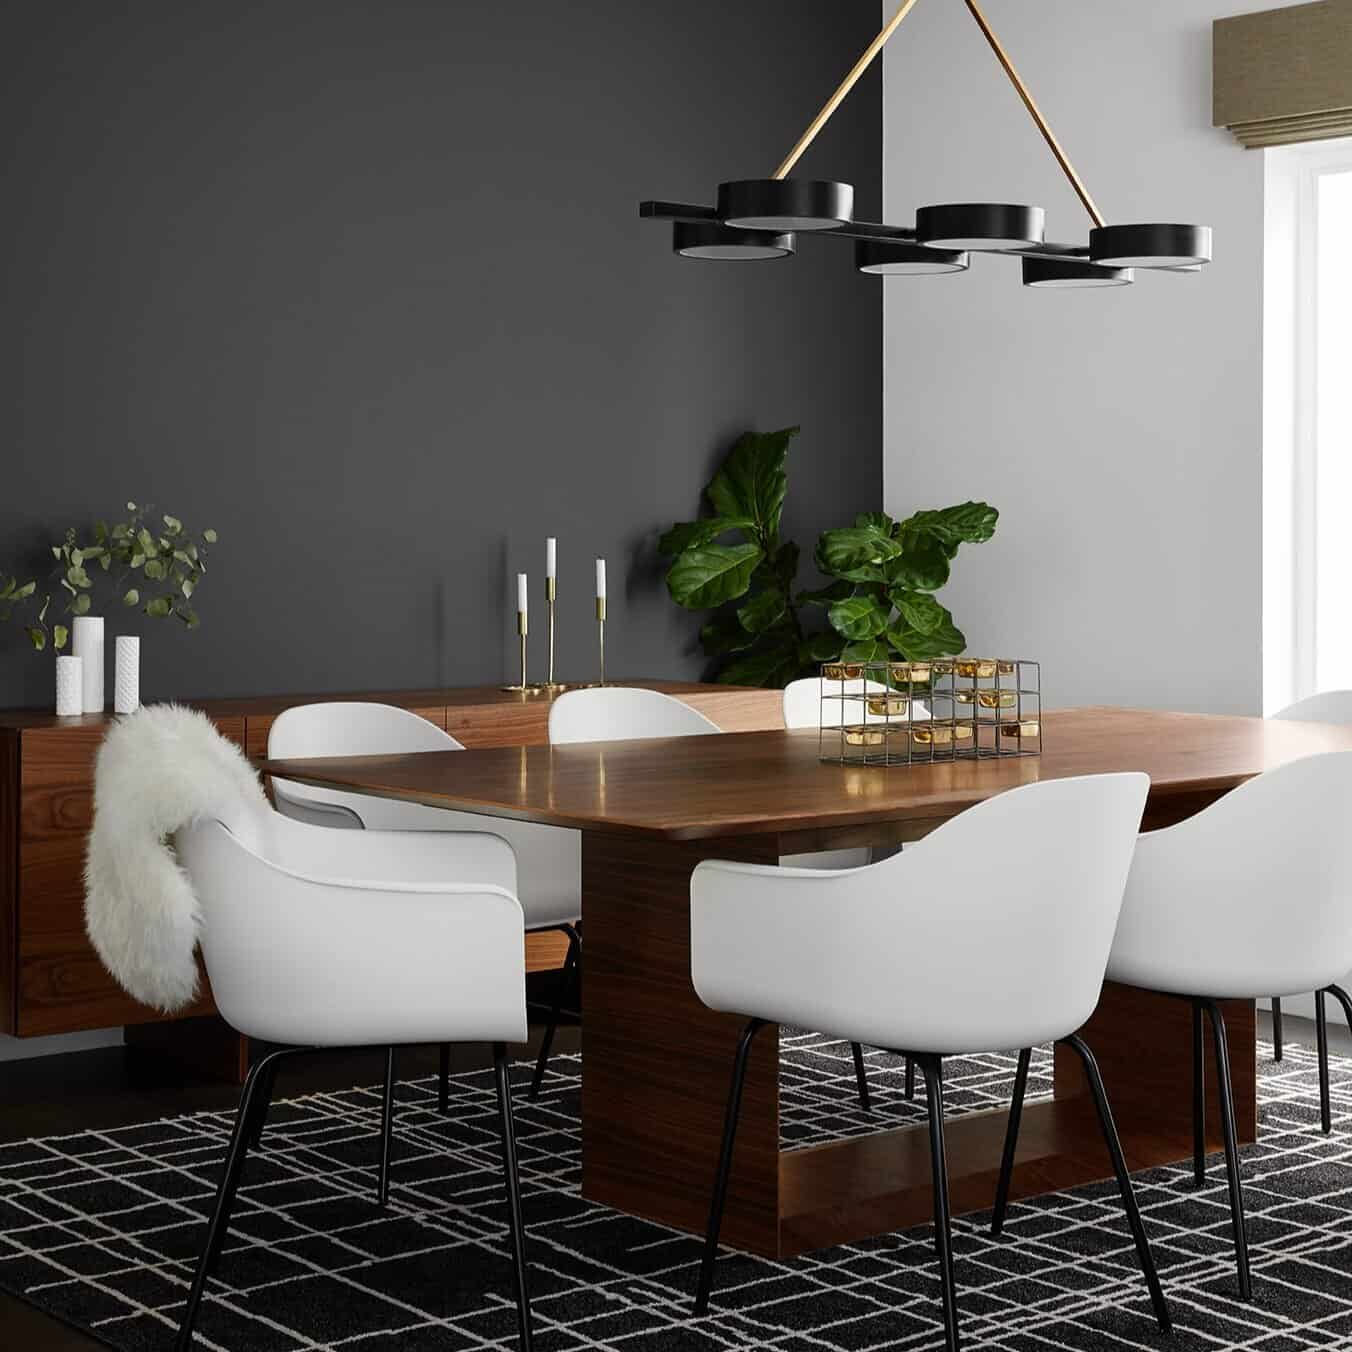 asymmetrical lines in dining room